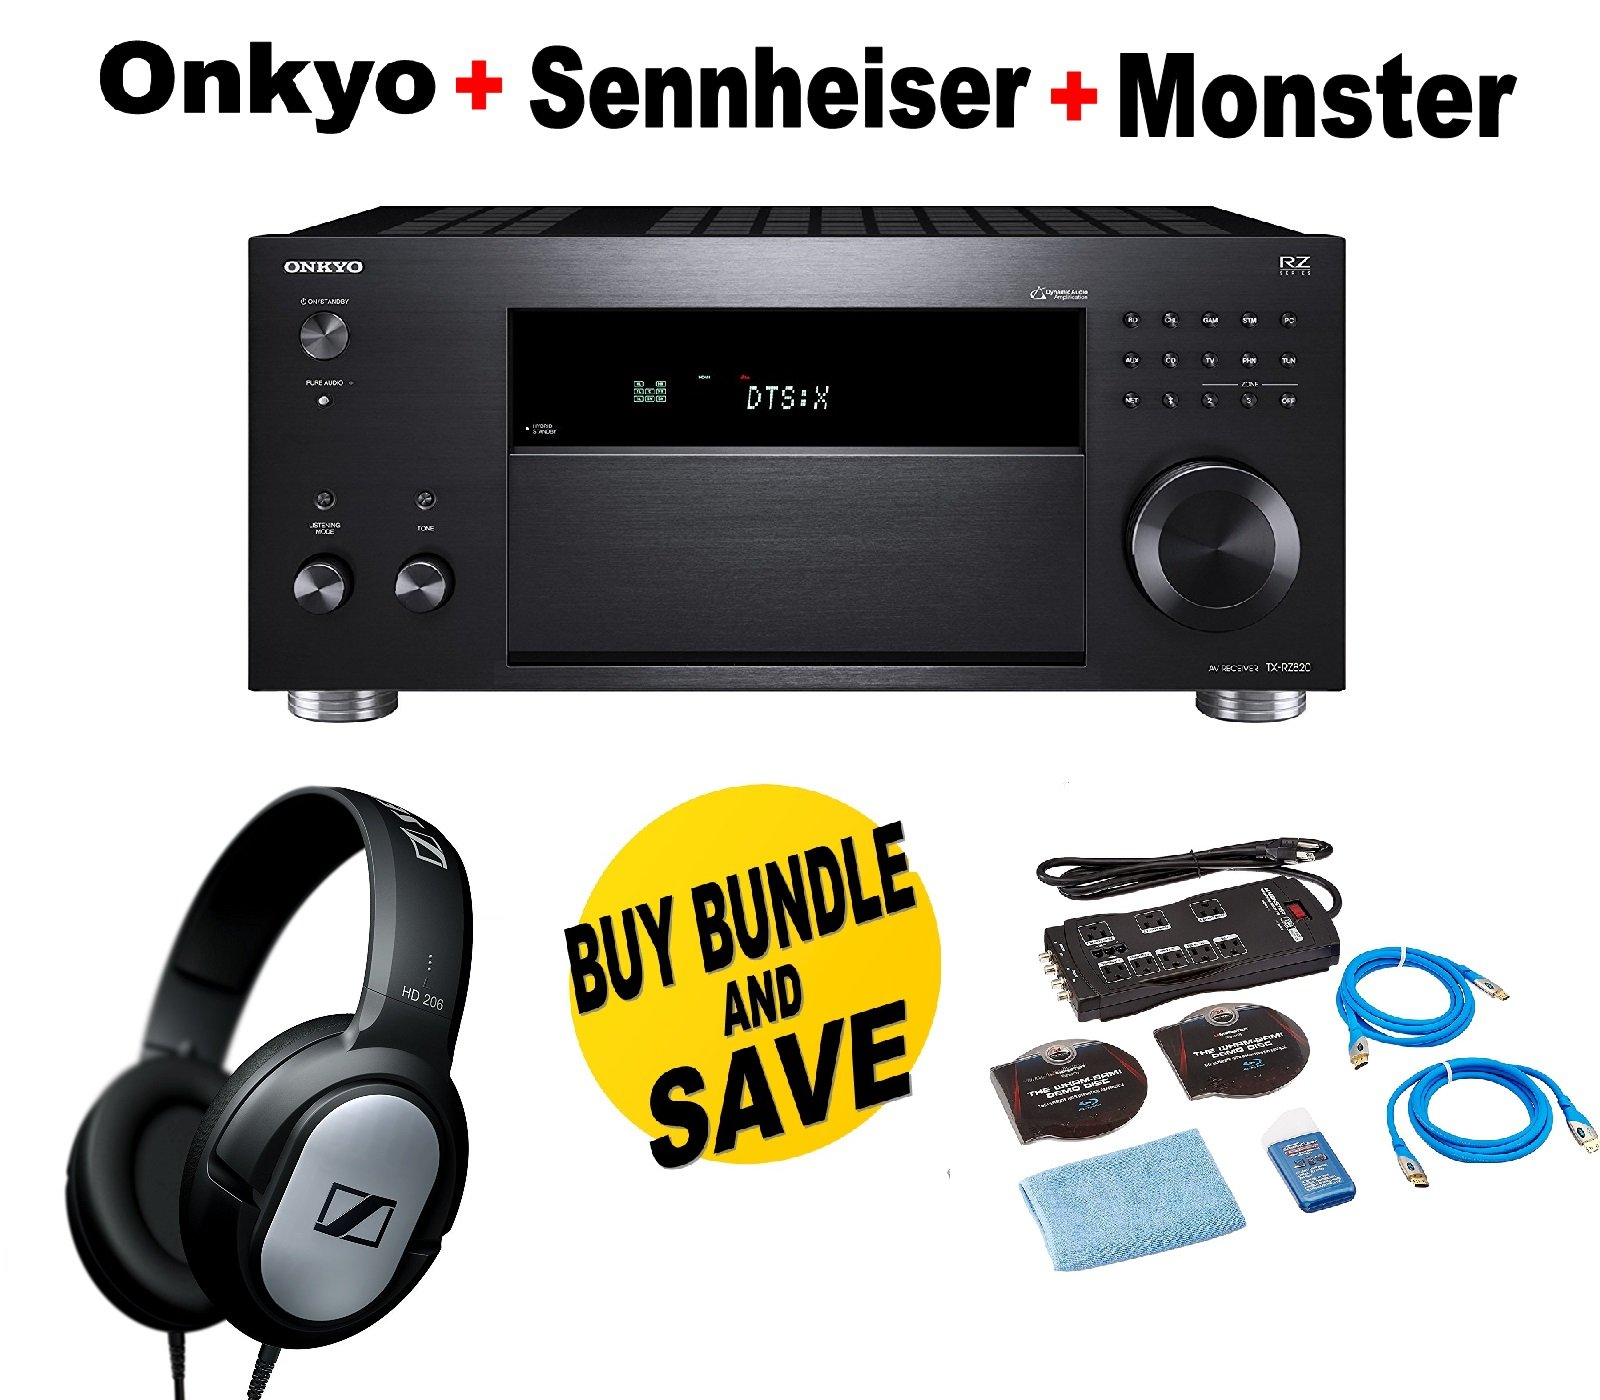 Onkyo Rz Series Audio & Video Component Receiver Black (TX-RZ820) + Monster Home Theater Accessory Bundle + SENNHEISER HD206 Bundle by Onkyo